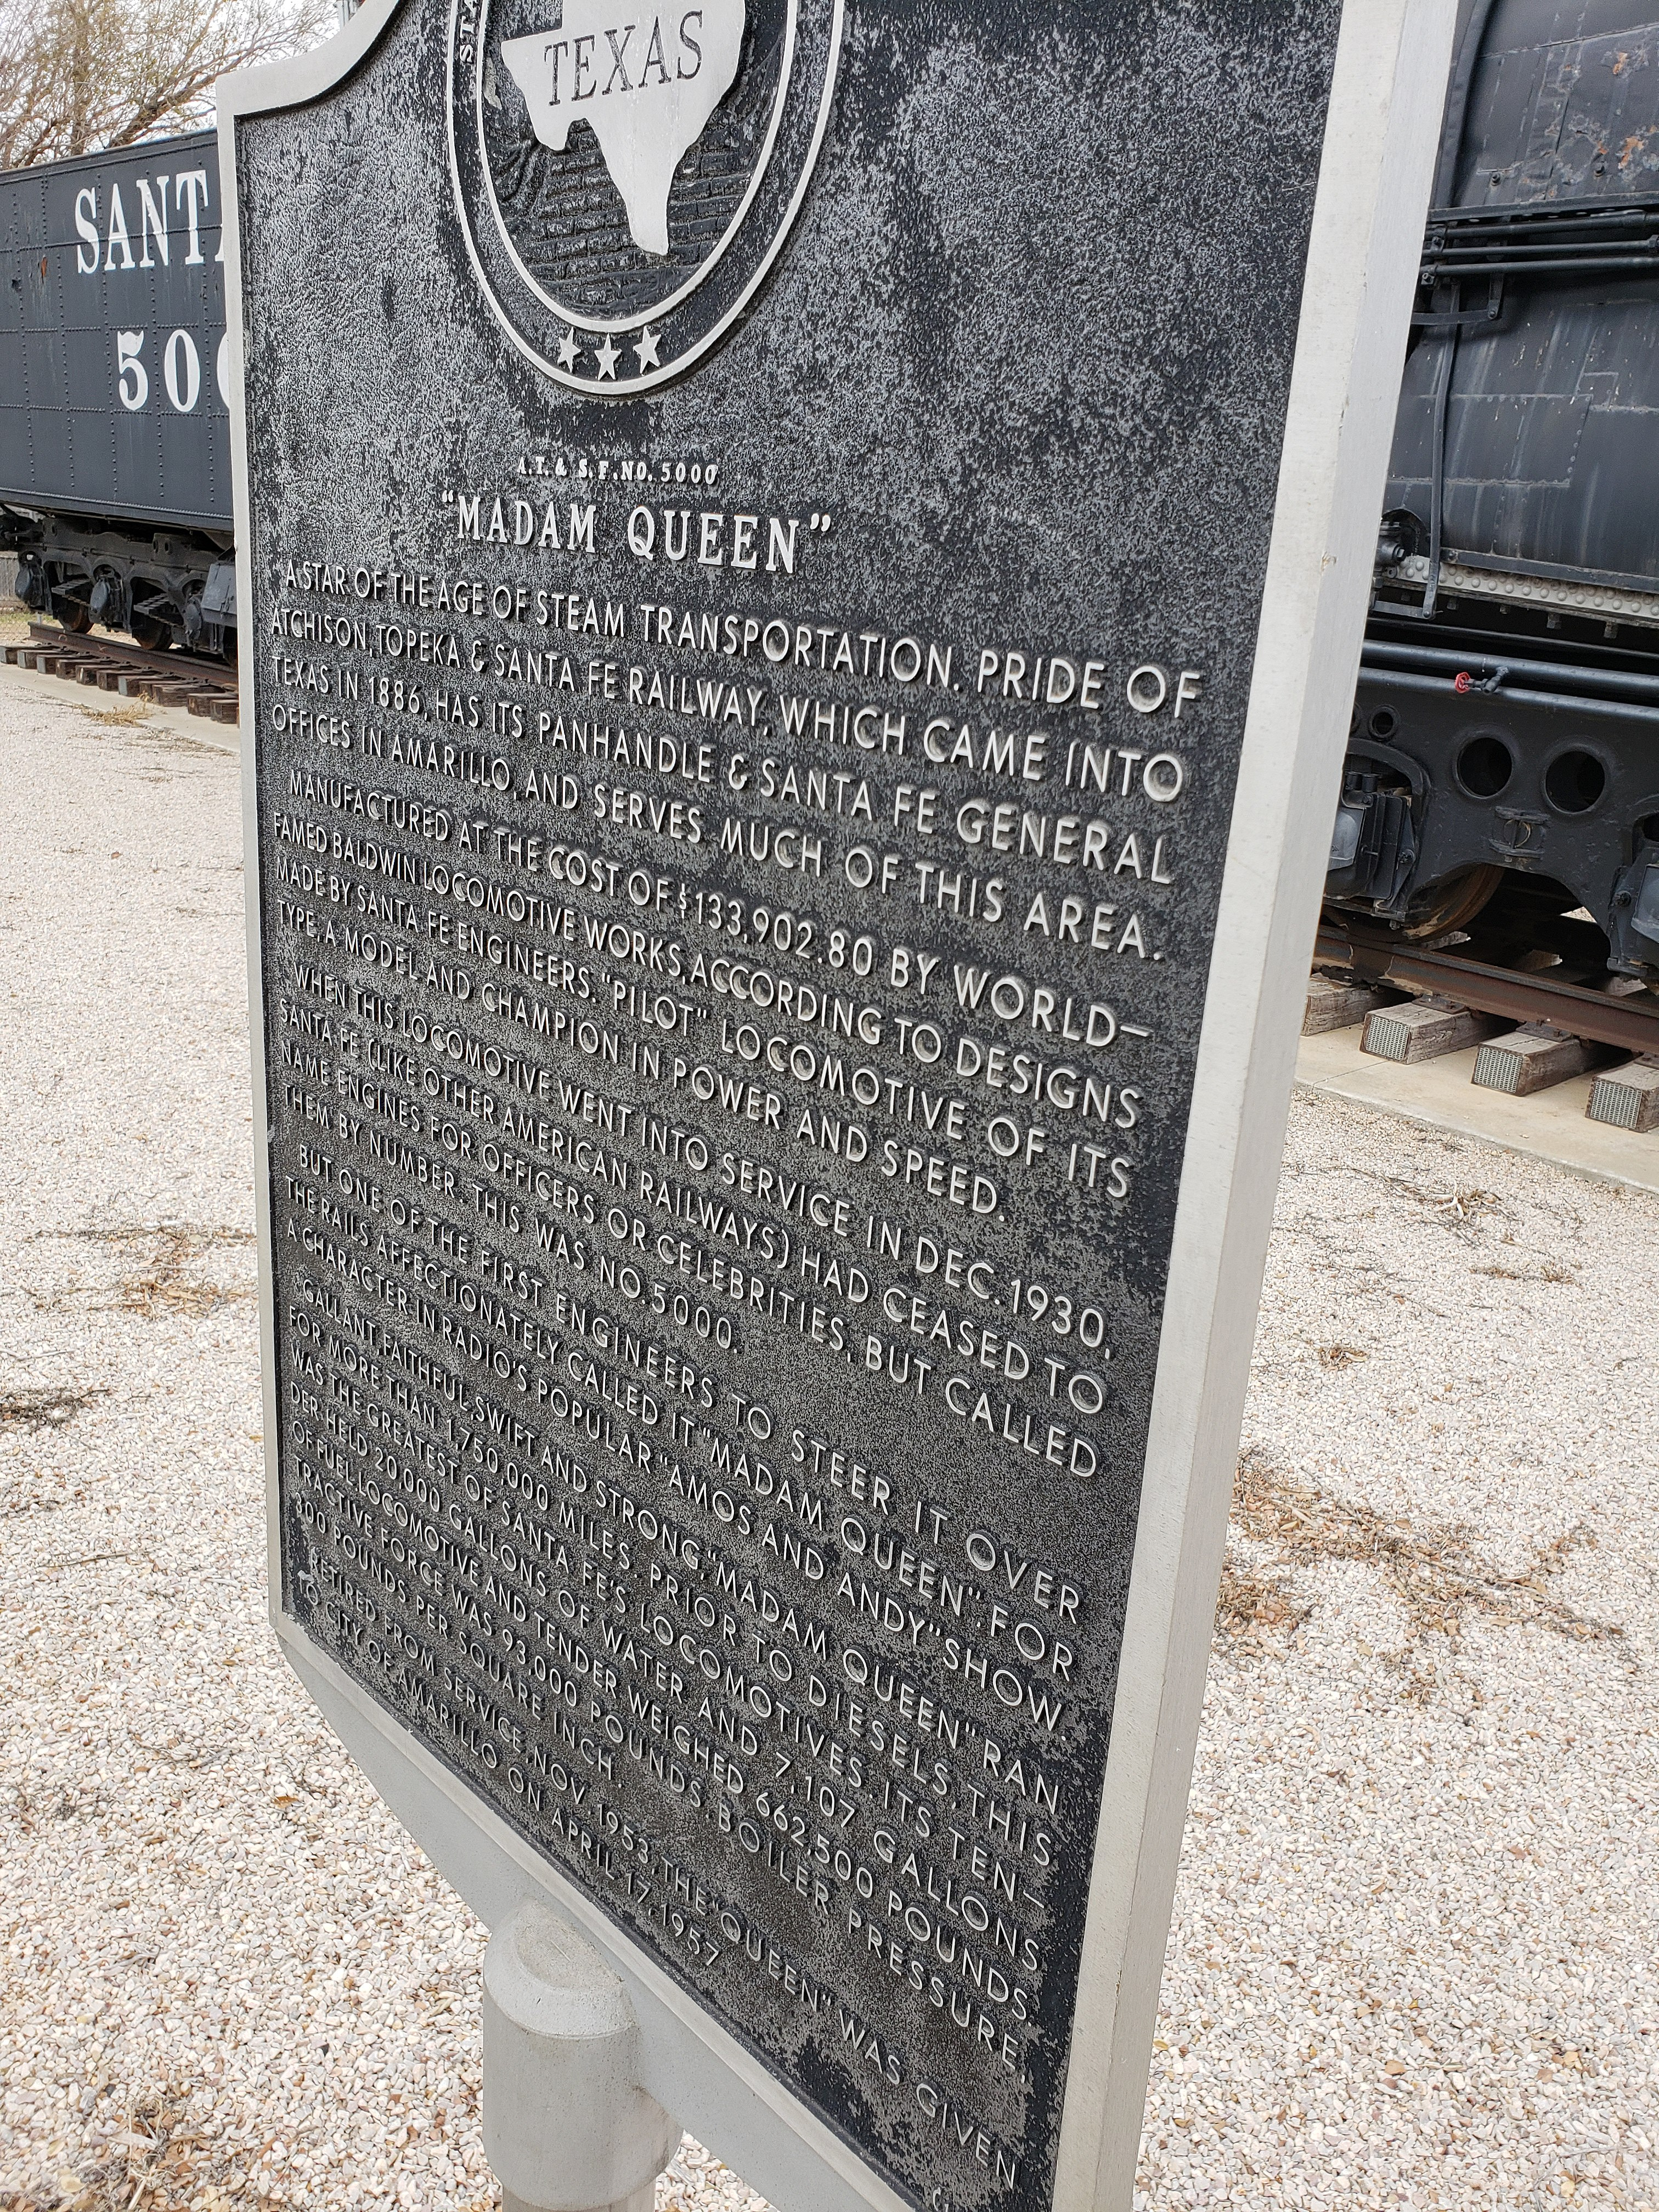 File:Texas Historical Marker Madam Queen jpg - Wikimedia Commons